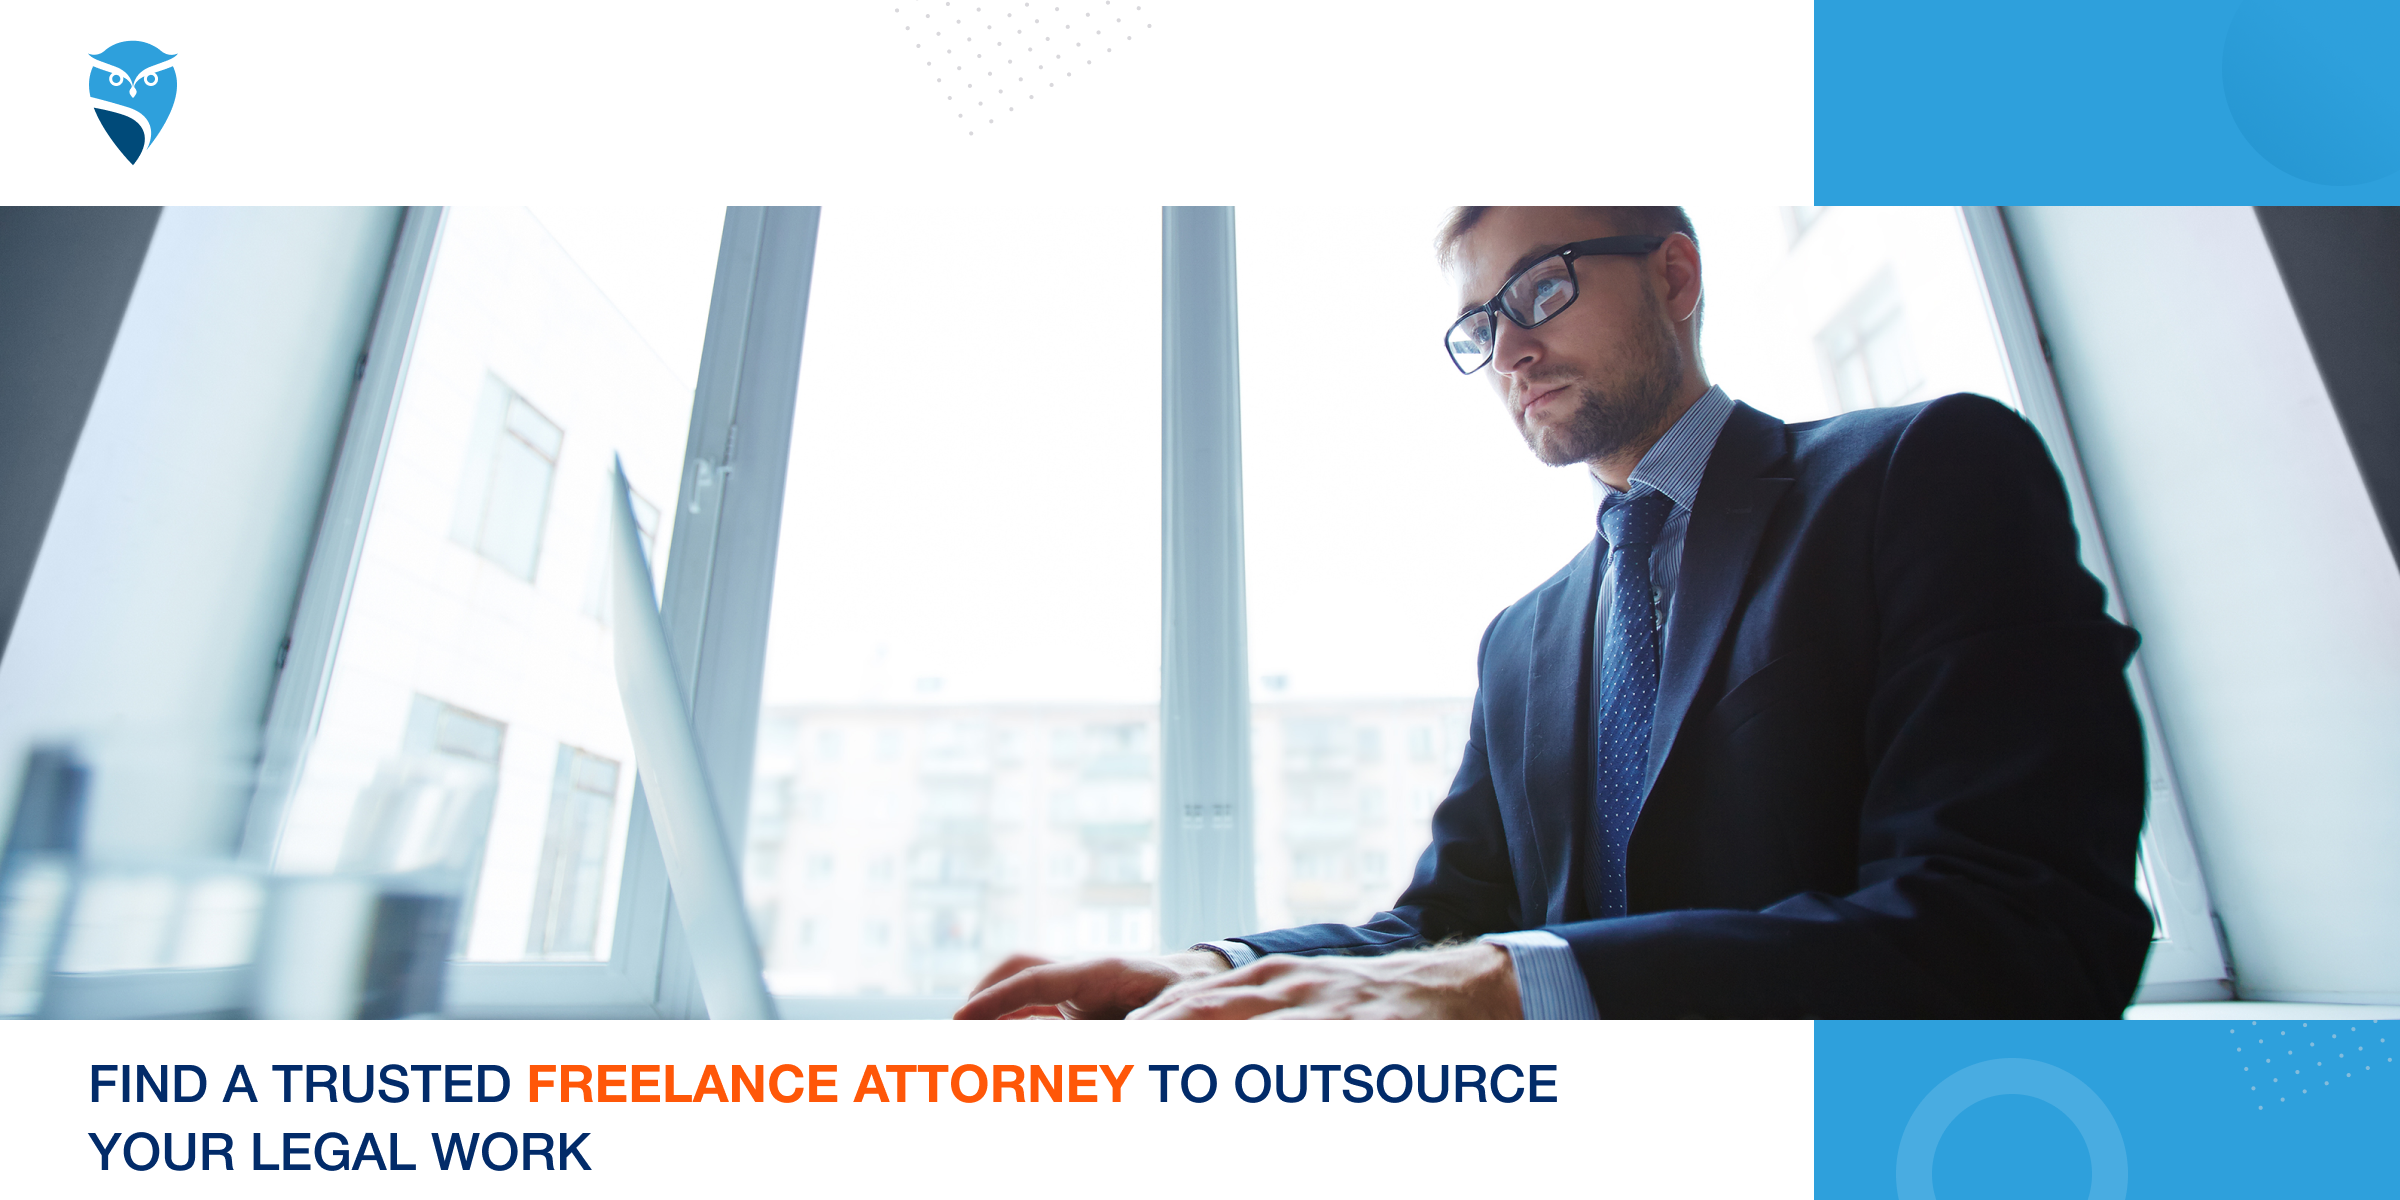 Find a Trusted Freelance Attorney to Outsource Your Legal Work